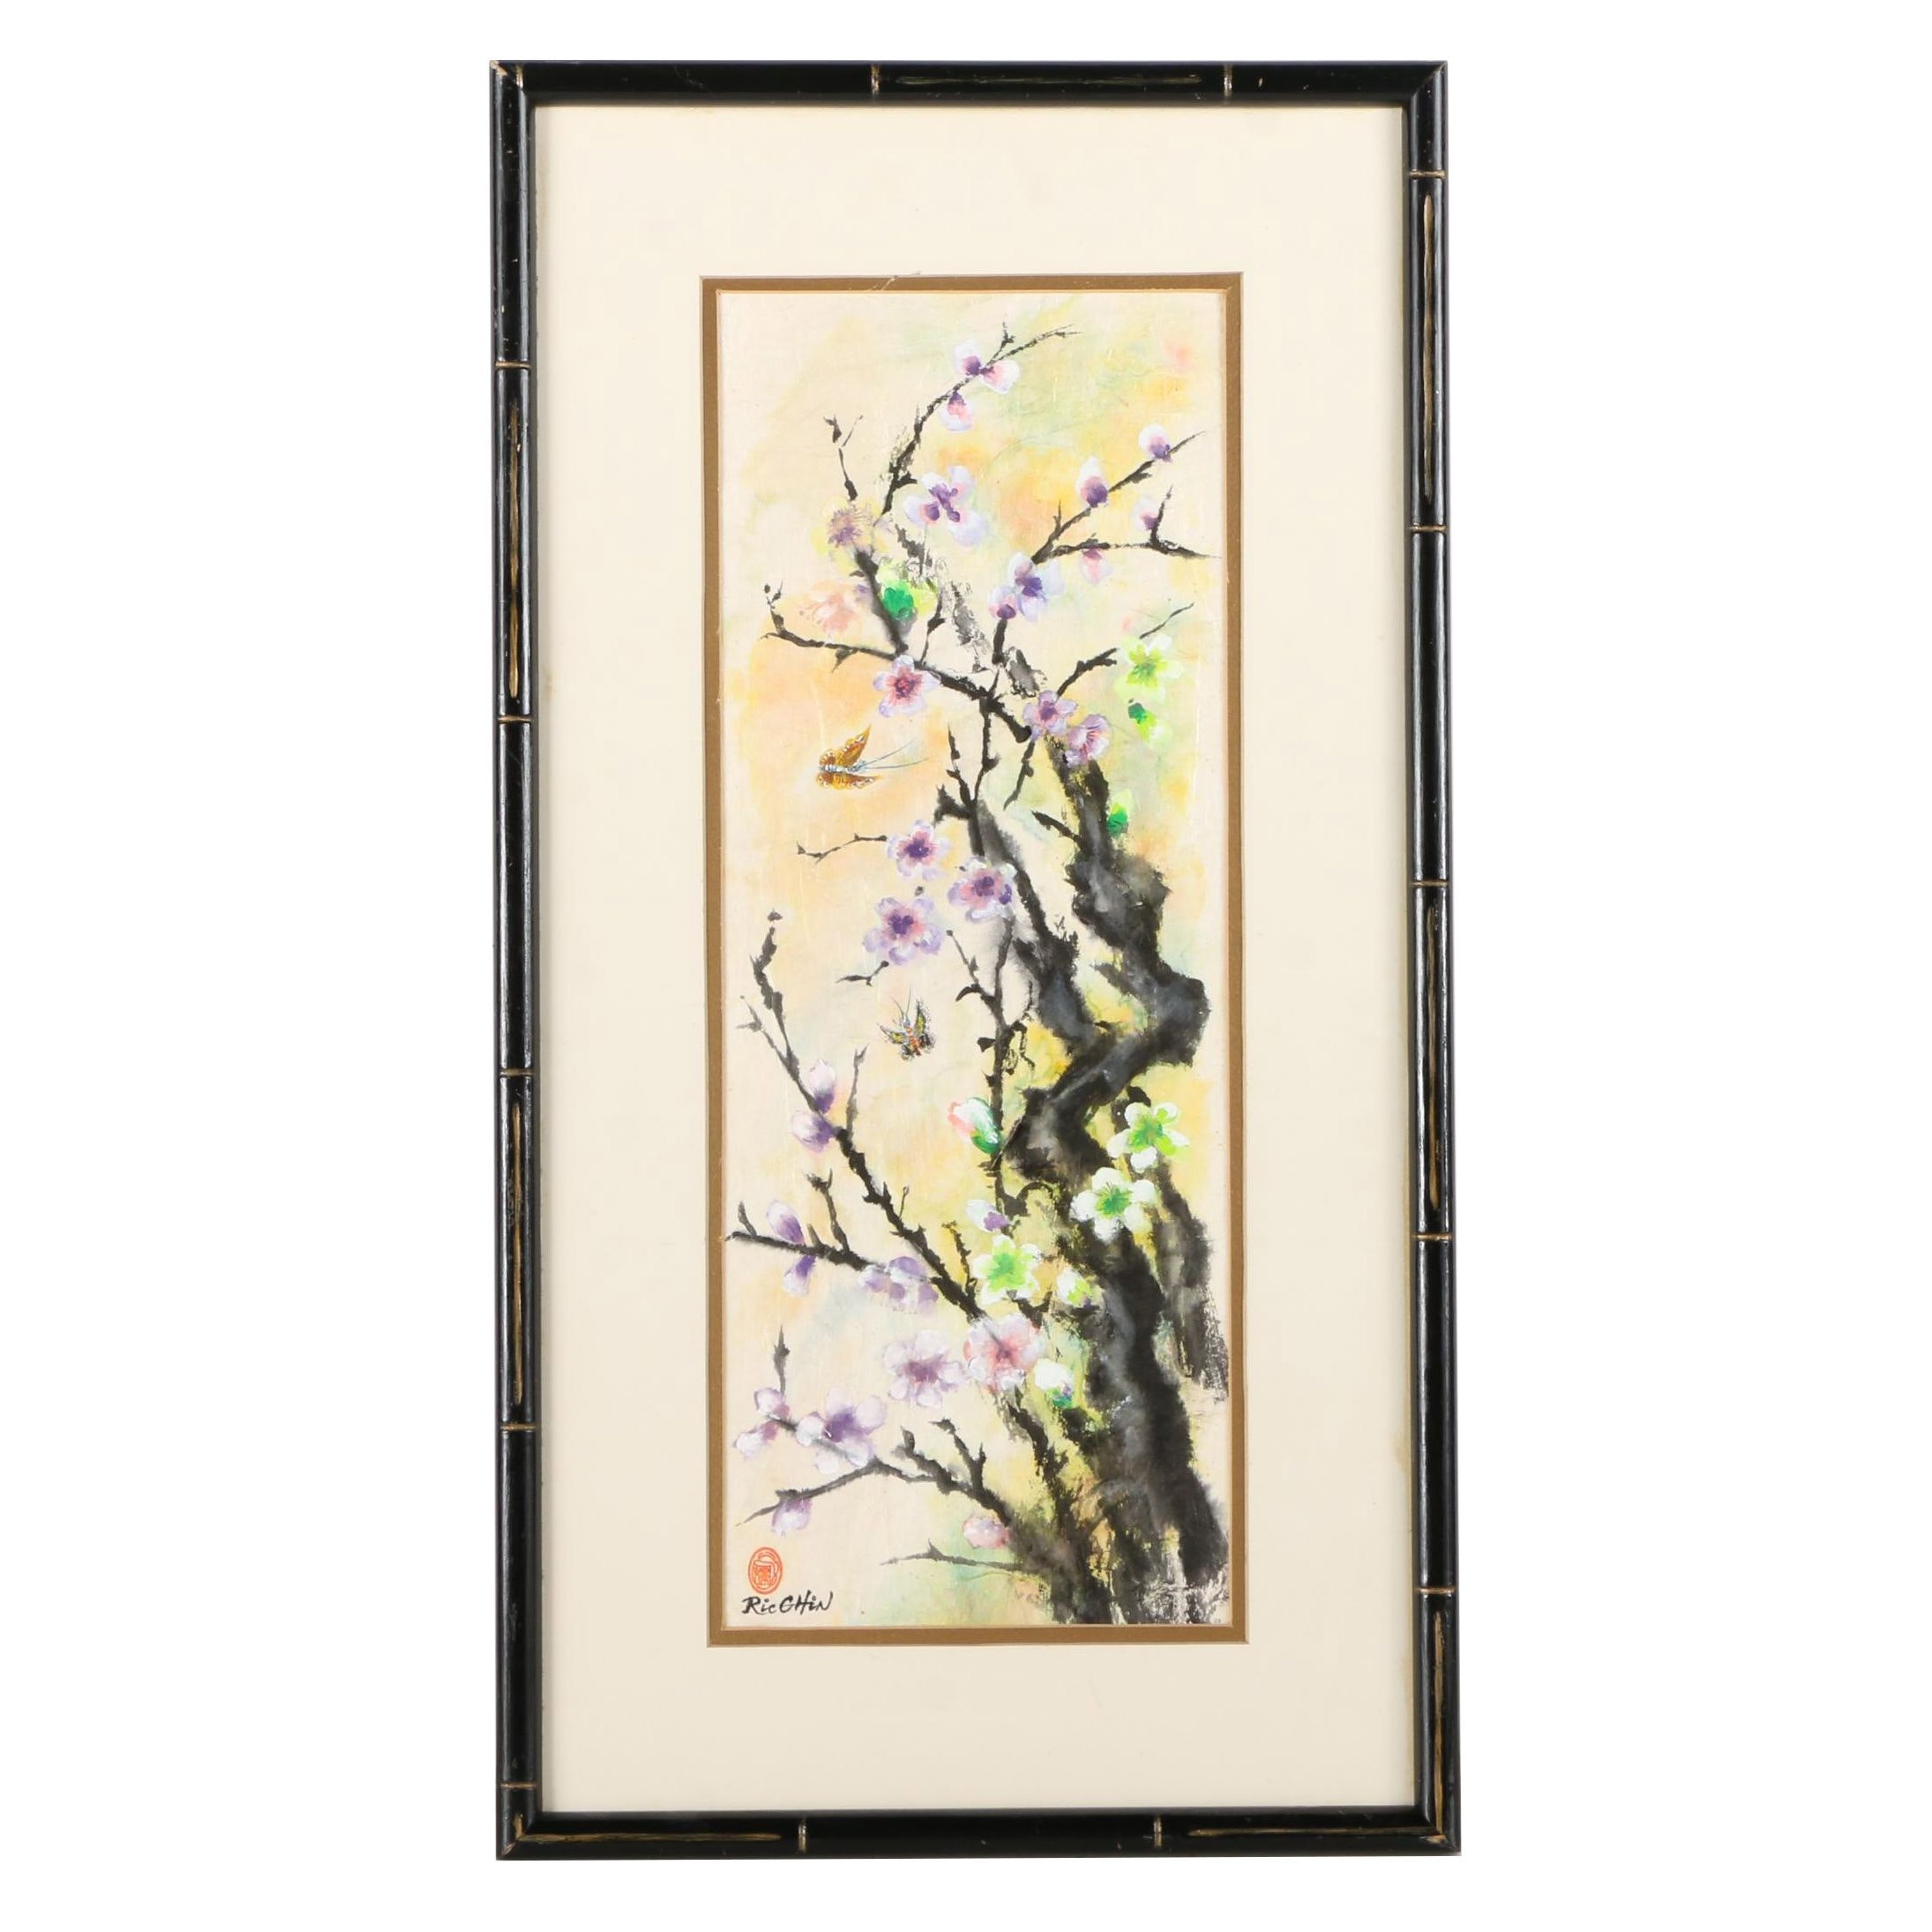 Ric Chin Gouache Painting on Paper of Cherry Blossoms